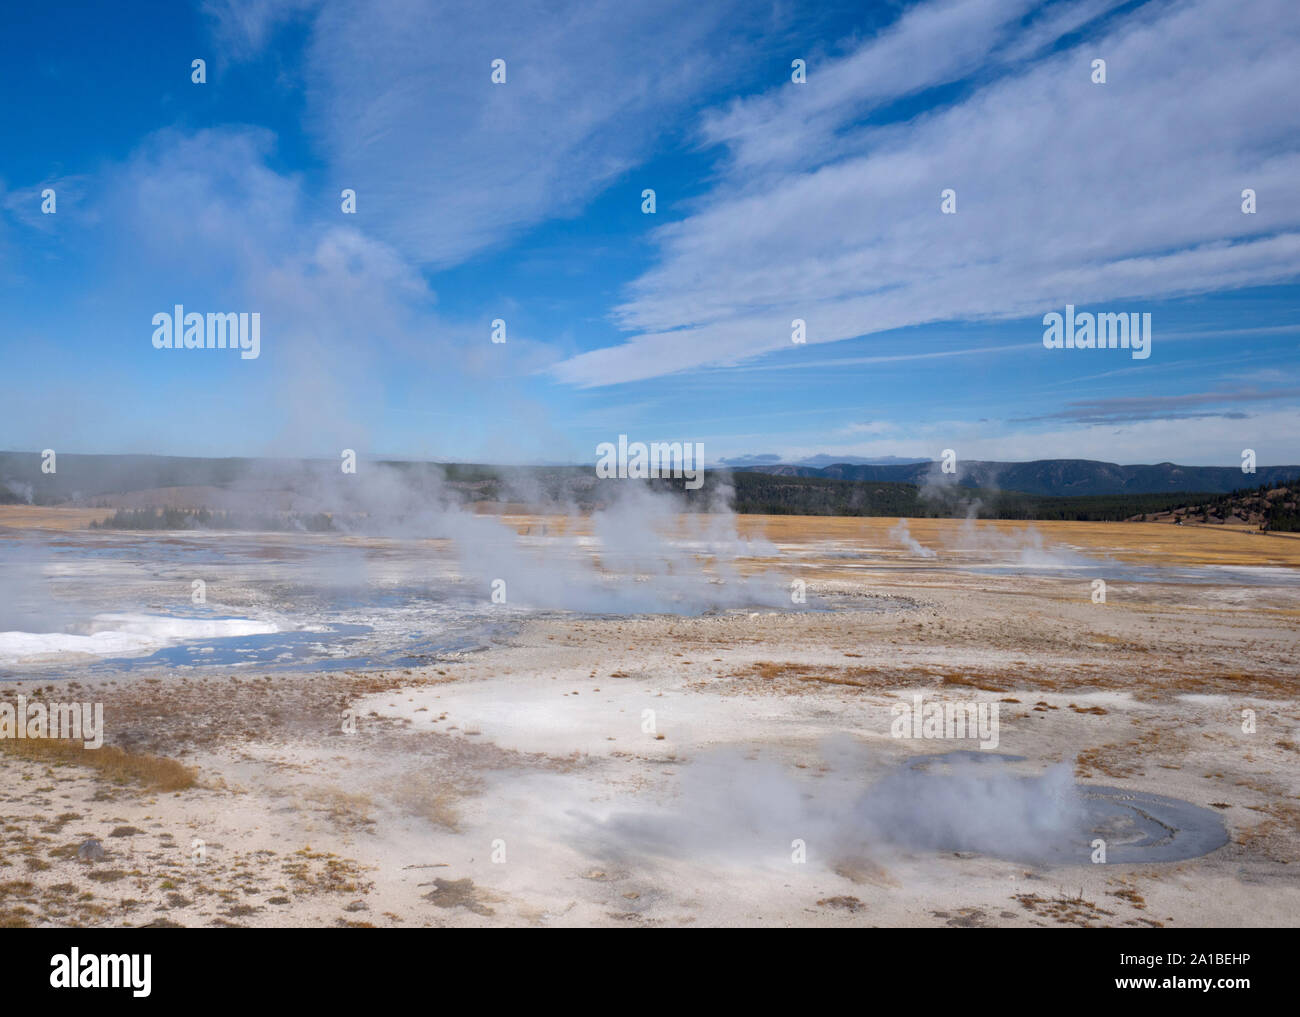 Hot springs de vapeur, Midway Geyser Basin, Parc National de Yellowstone, Wyoming, USA Banque D'Images